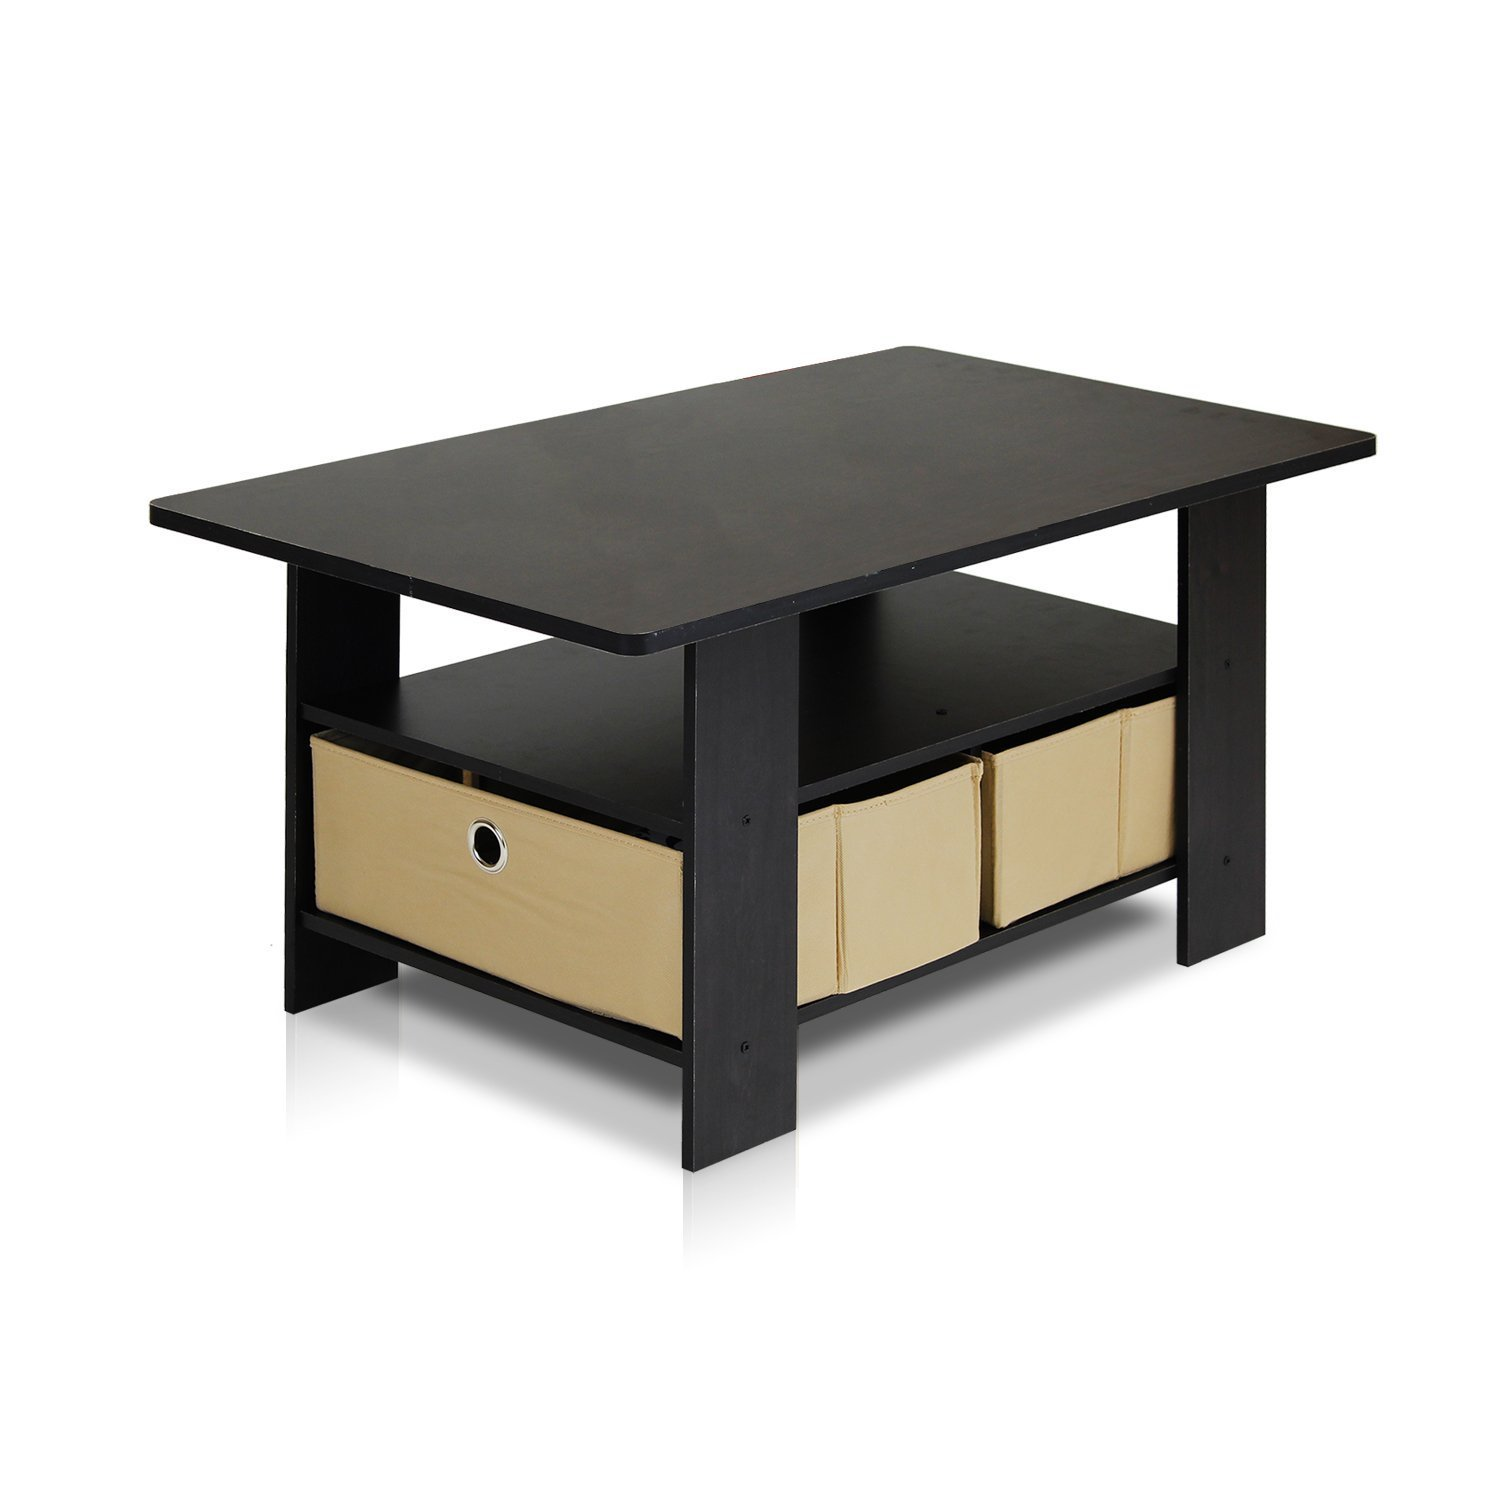 space saver coffee table with bins espresso brown. Black Bedroom Furniture Sets. Home Design Ideas